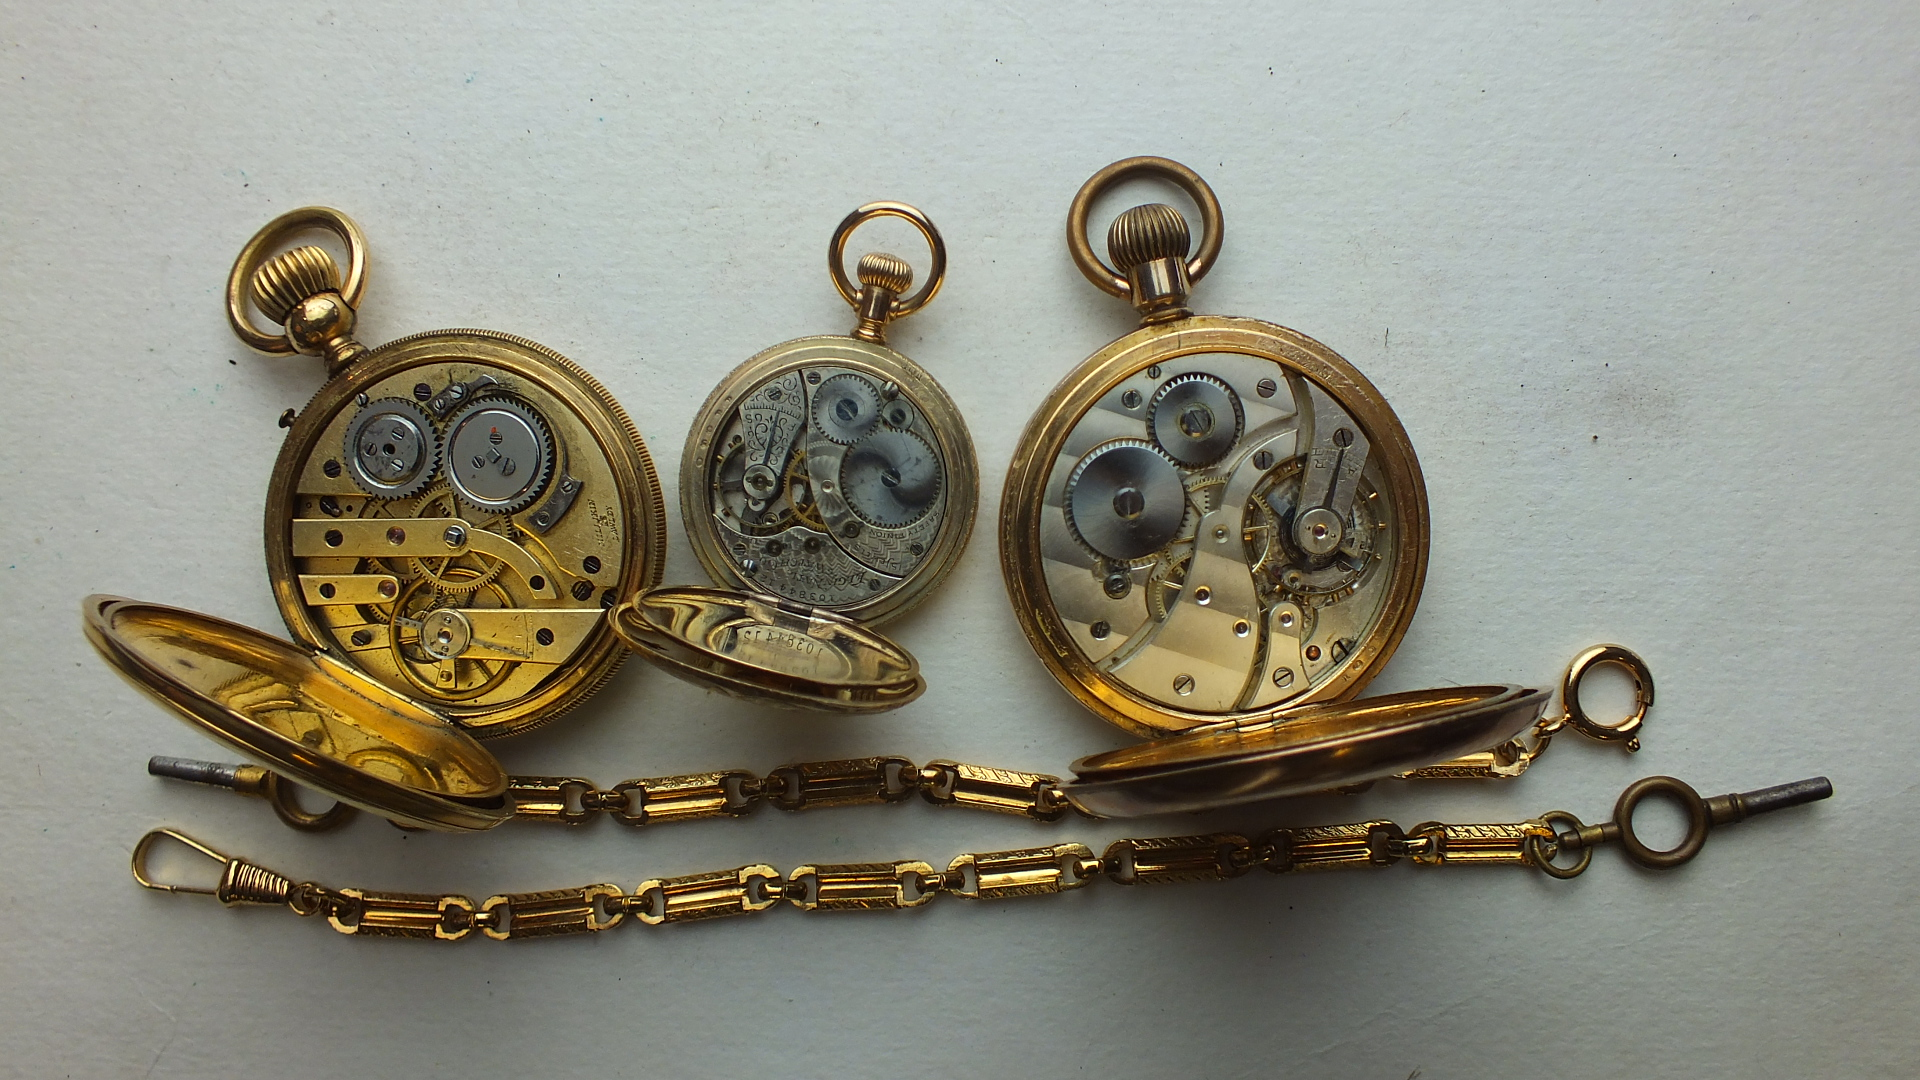 Lot 244 - Three gold-plated keyless open-face pocket watches, (all a/f) and two plated watch chains, (5).